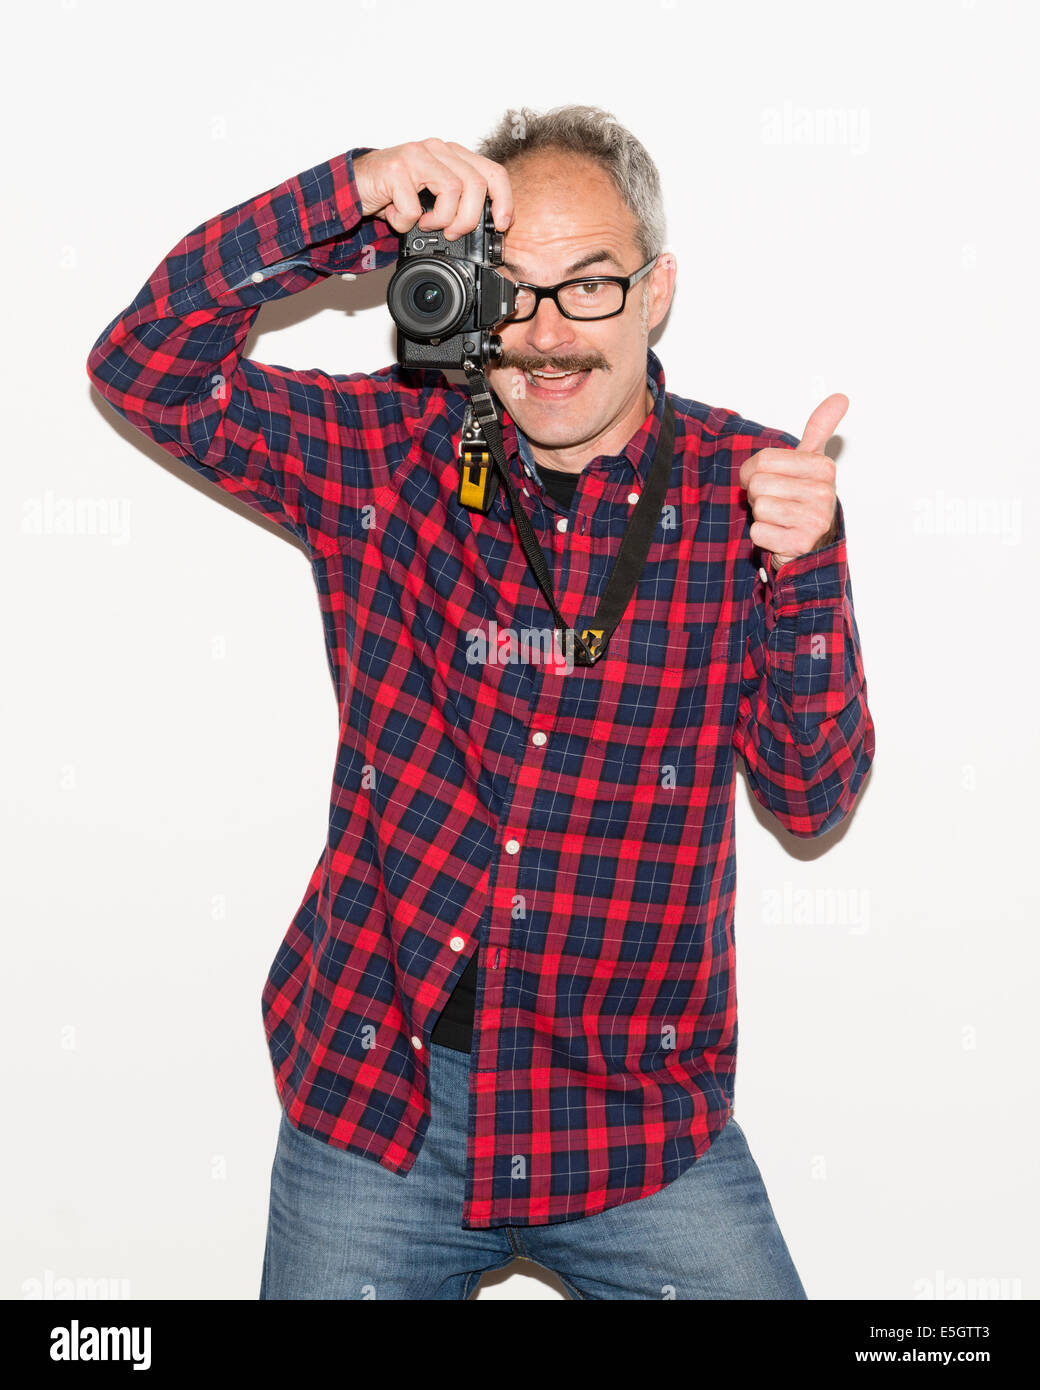 Photographer guy with moustache wearing checked shirt holding a camera and taking a picture while giving thumbs - Stock Image